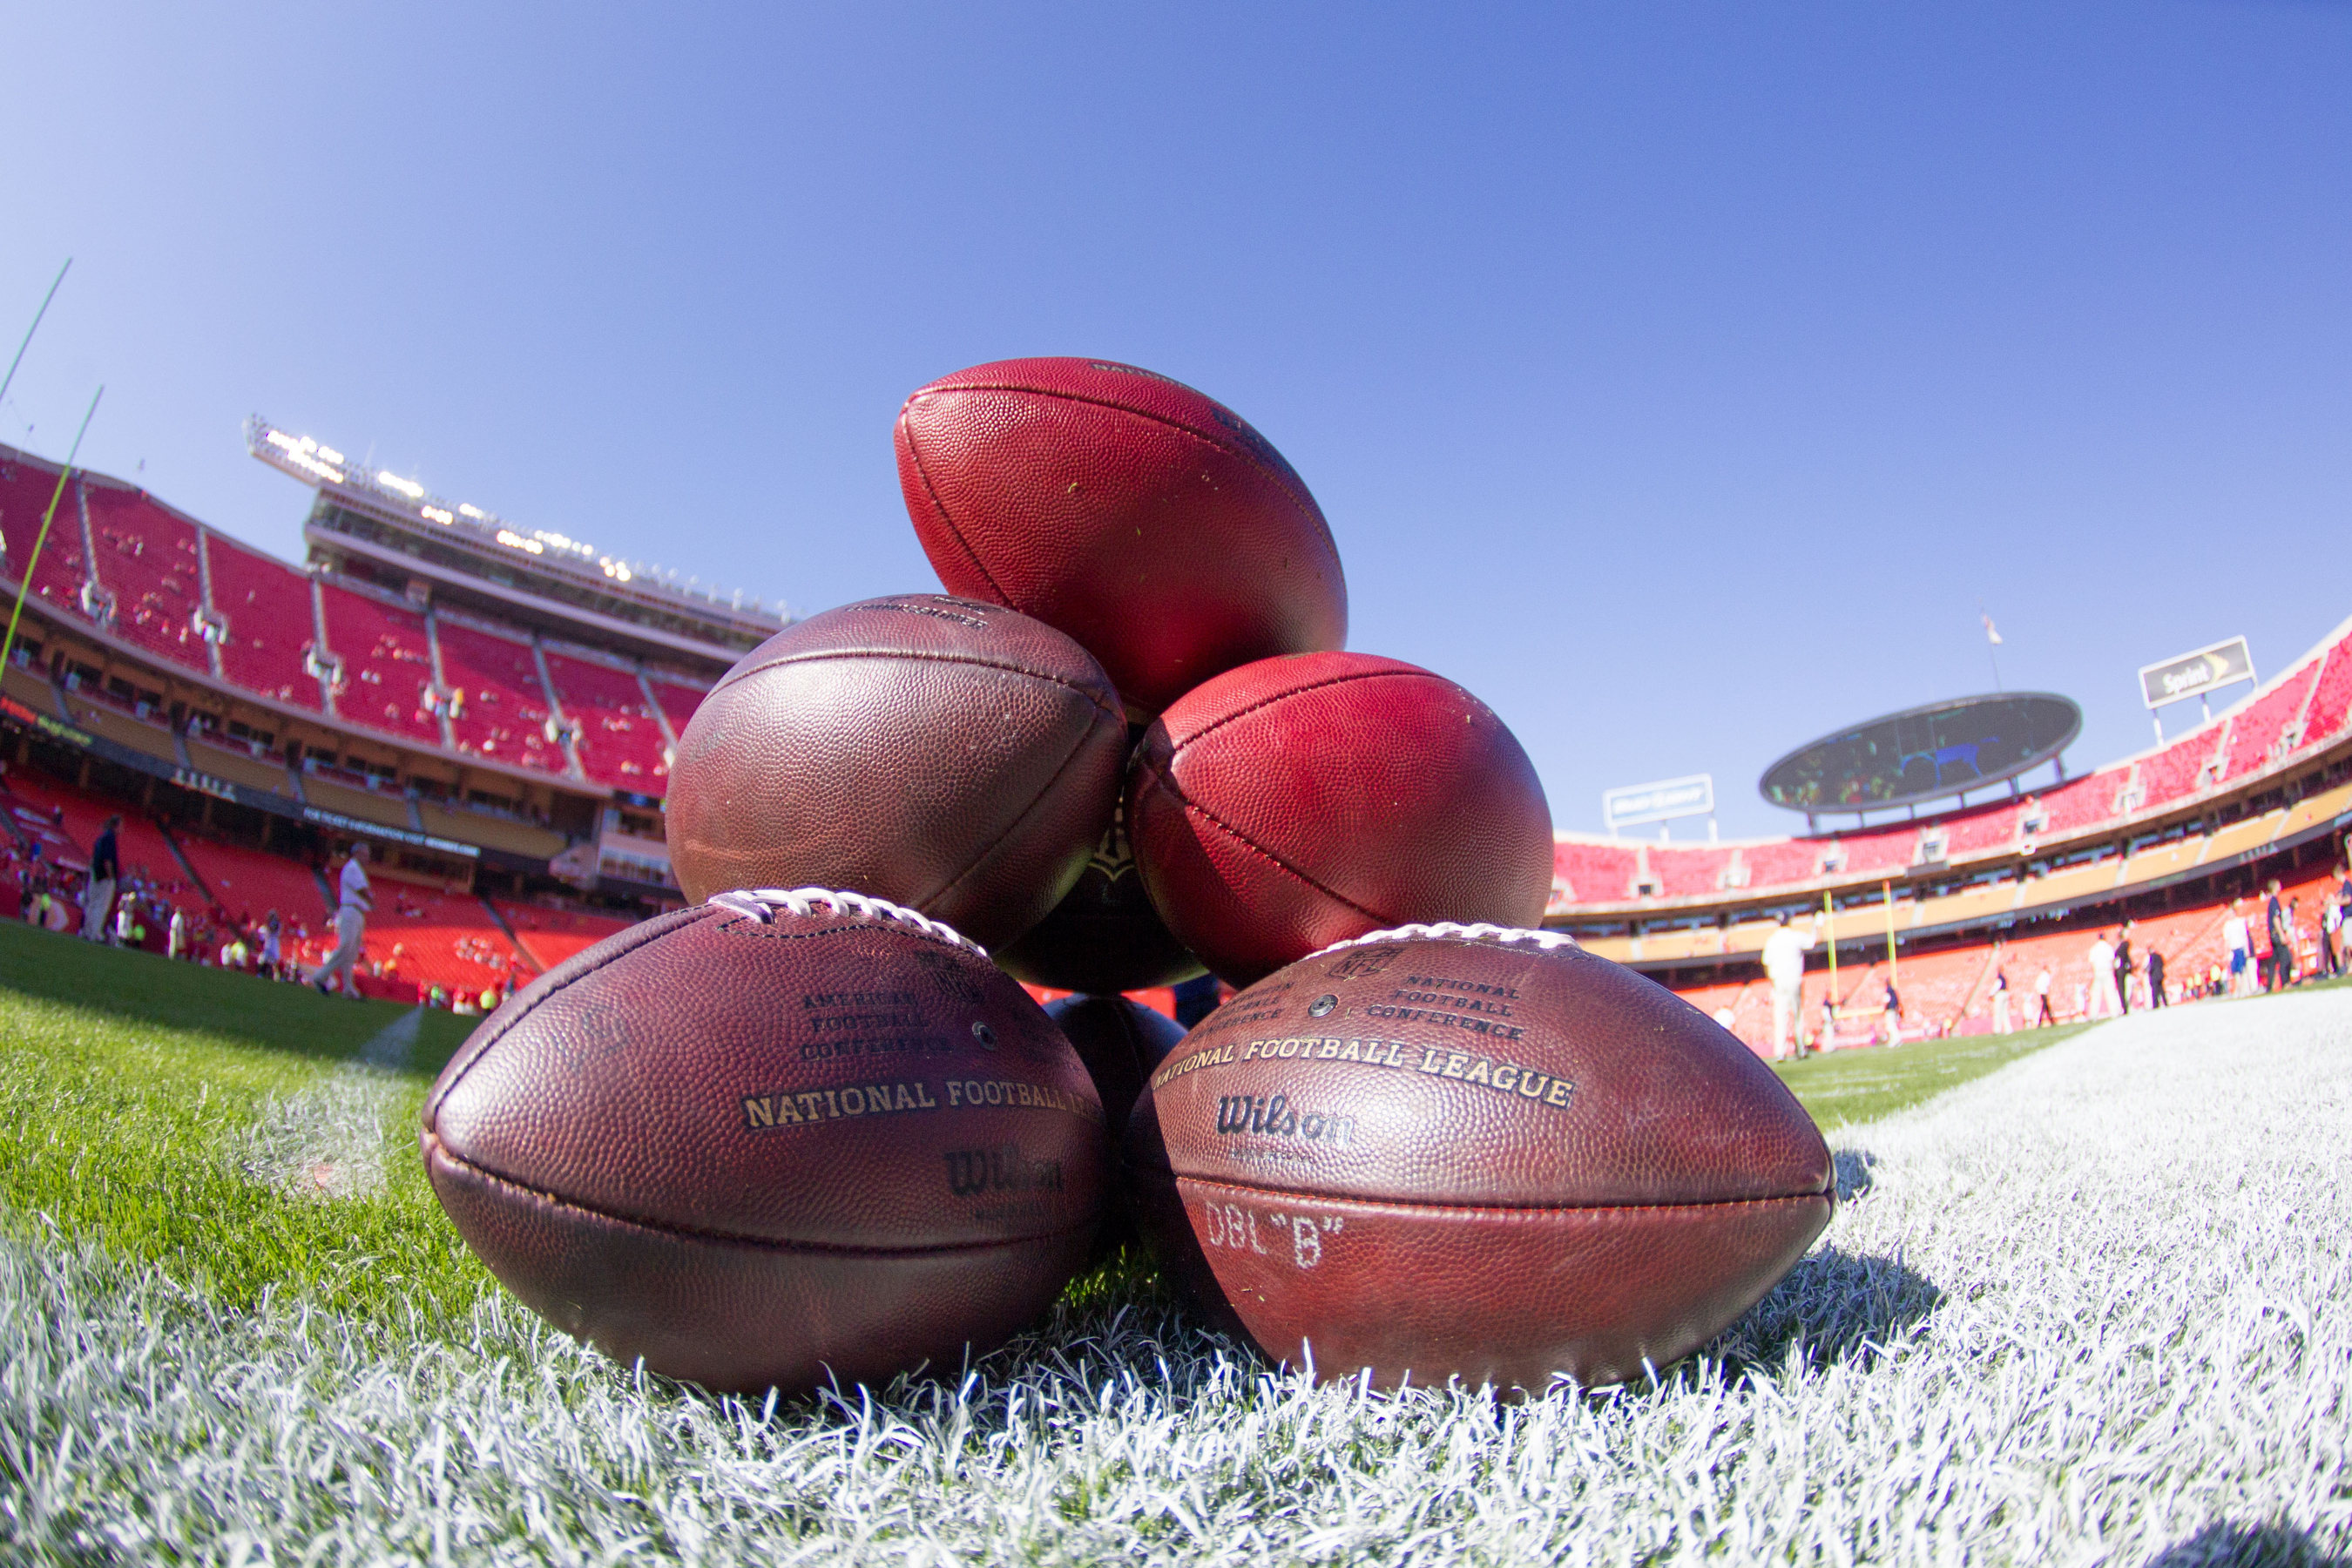 NFL: OCT 26 Rams at Chiefs